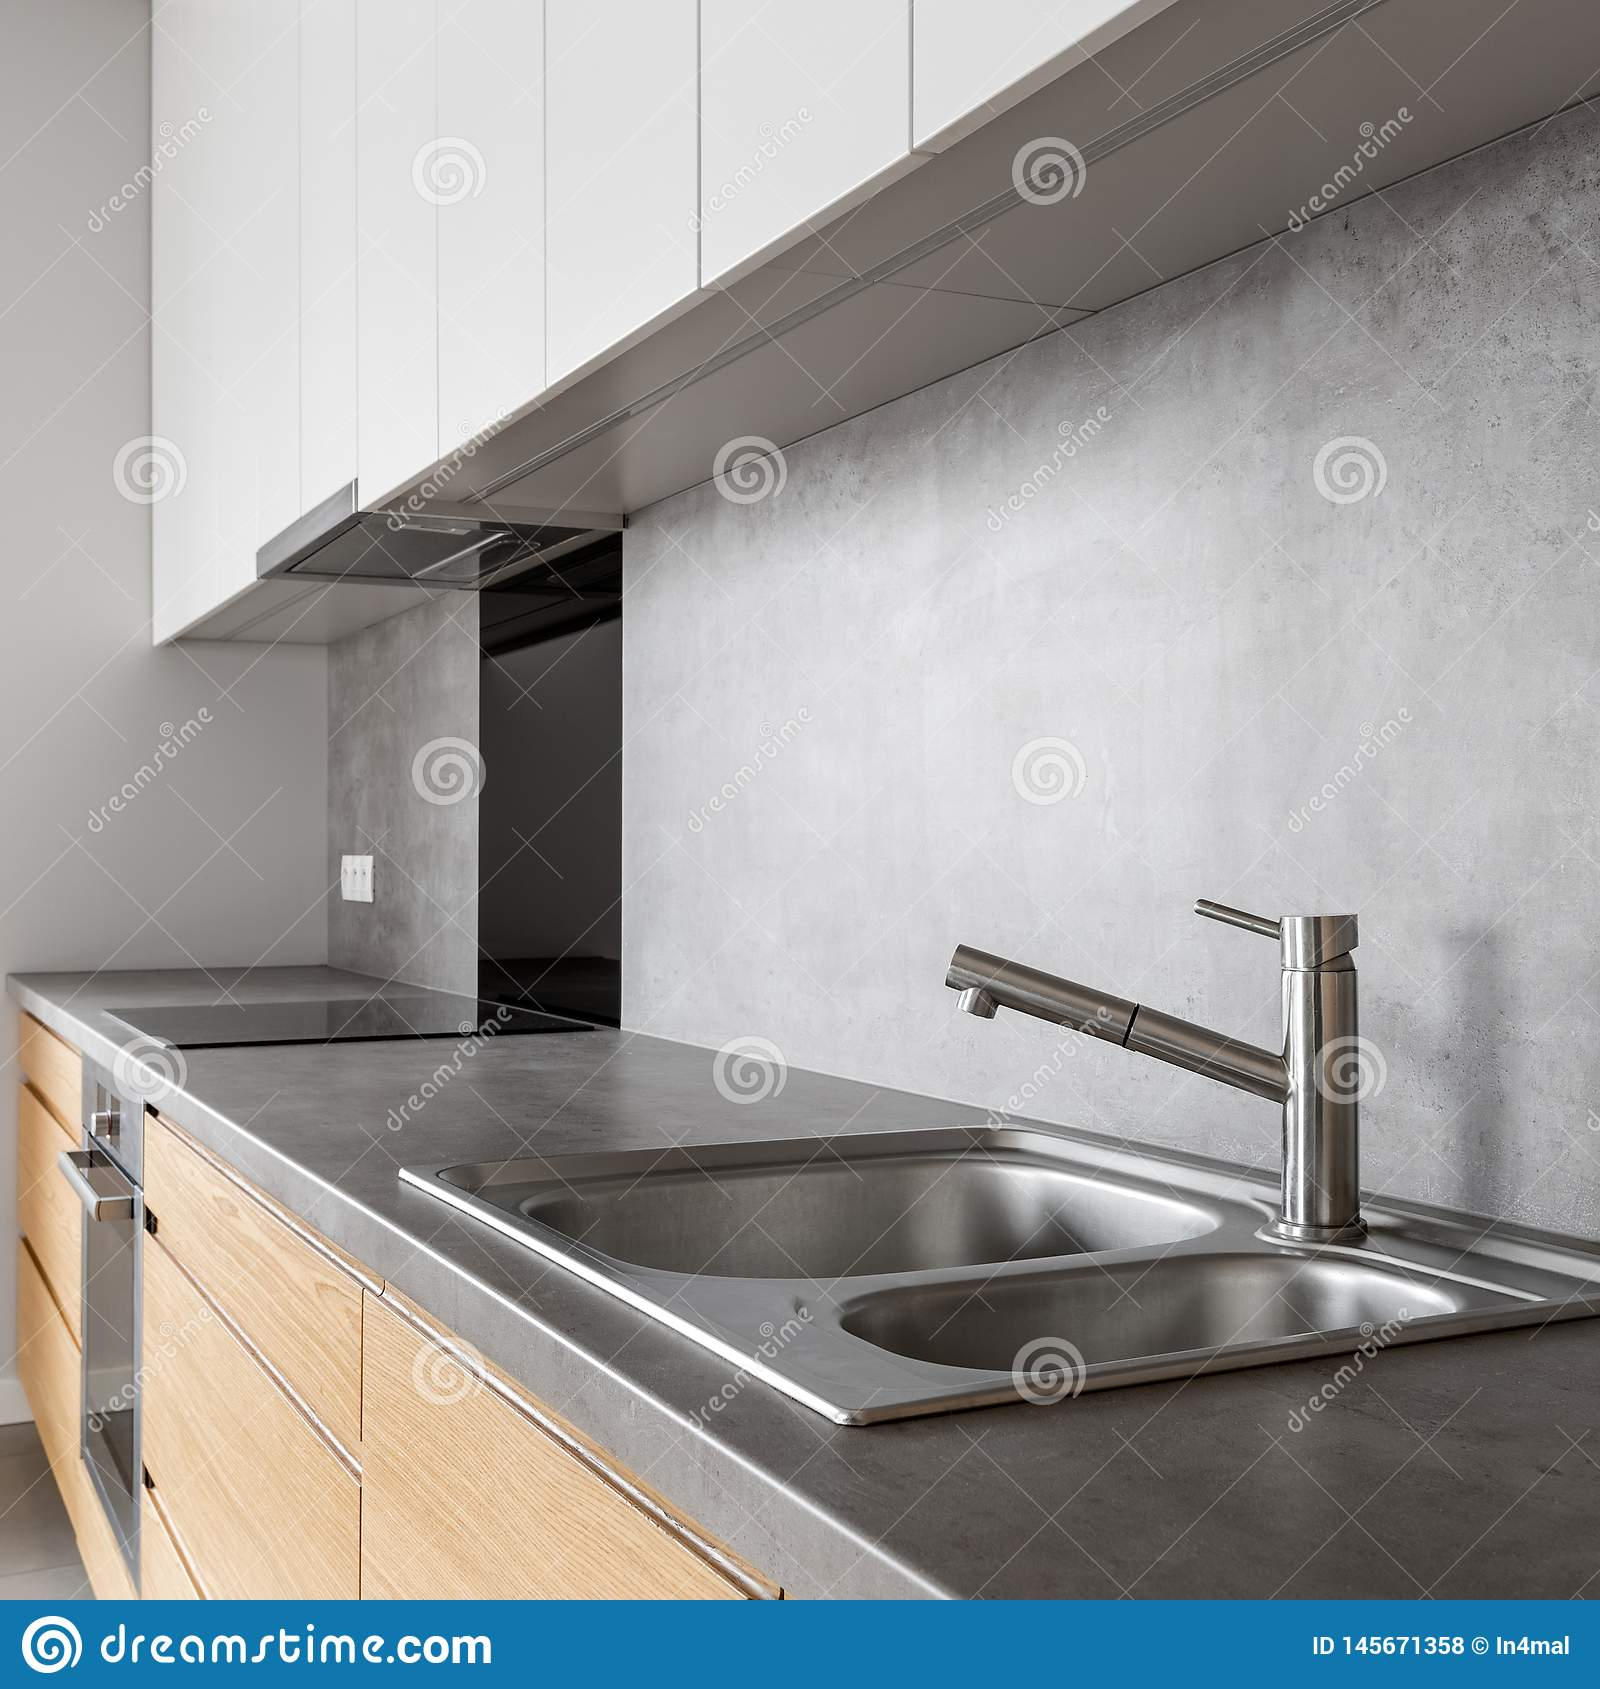 White And Wooden Kitchen Cabinets Stock Photo Image Of Design Elegant 145671358